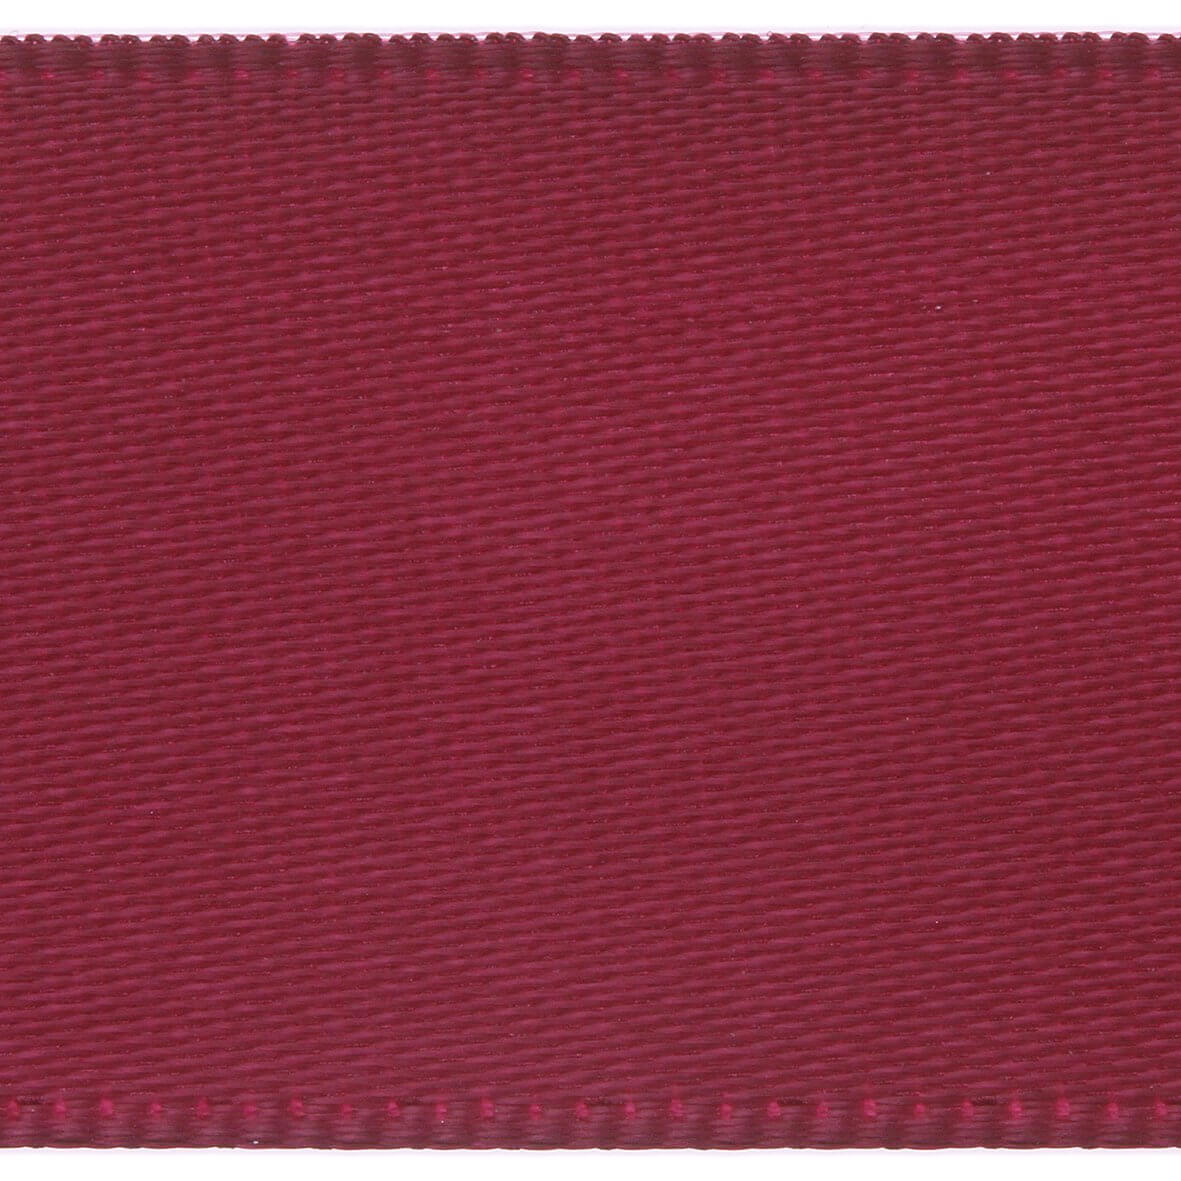 Burgundy Club Green 10mm Double Faced Satin Ribbon